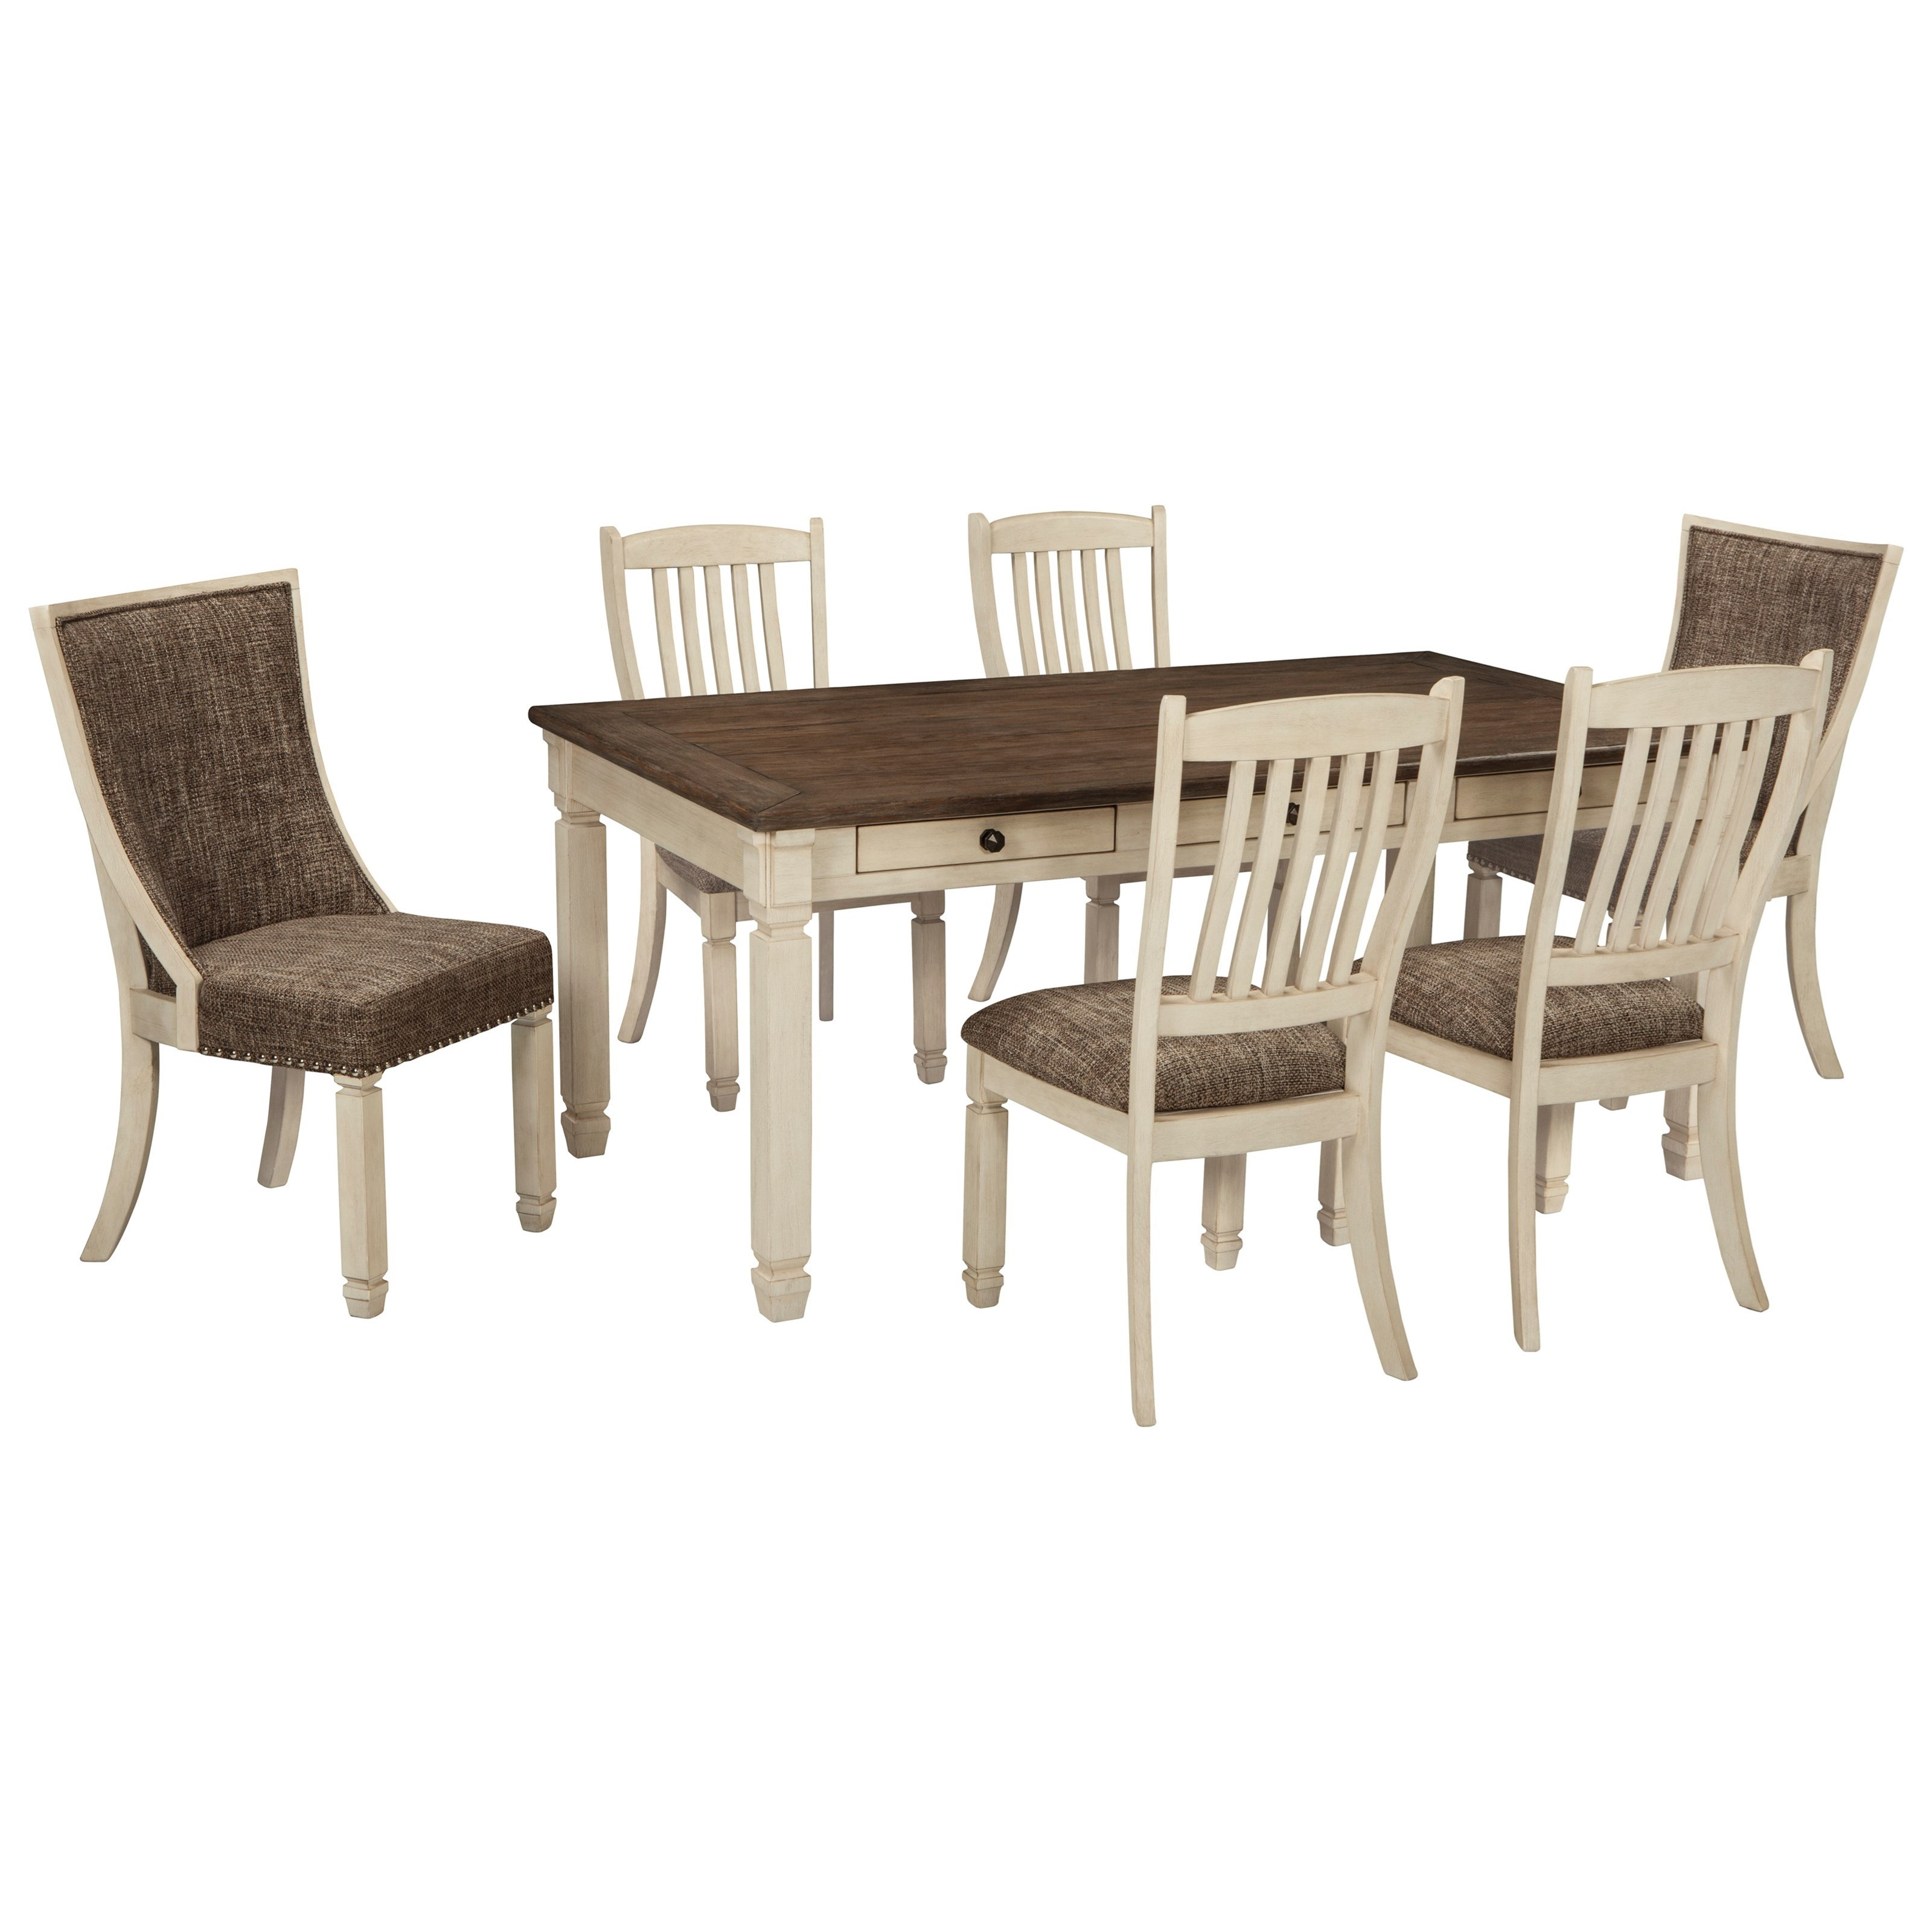 Bolanburg 7-Piece Table and Chair Set by Signature Design by Ashley at Value City Furniture